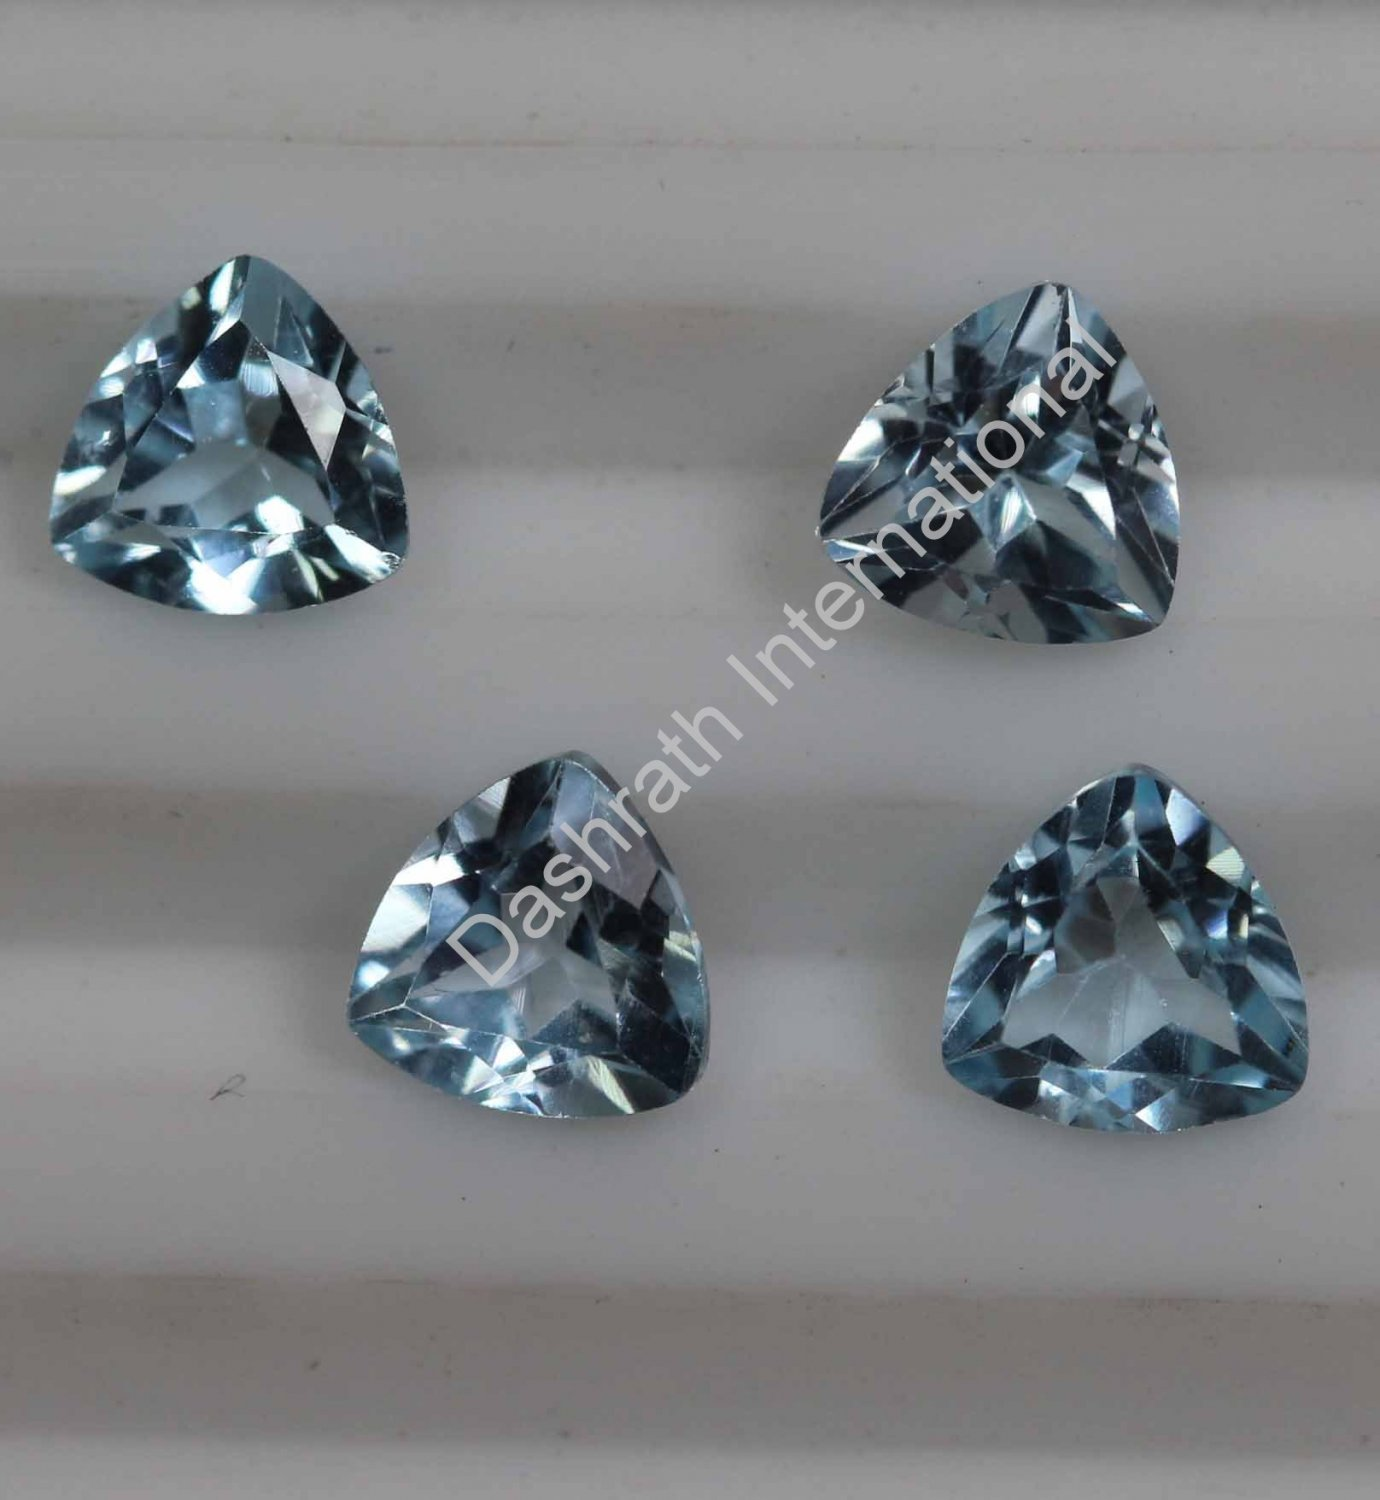 4mm Natural Sky Blue Topaz Faceted Cut Trillion 10 Pieces Lot Top Quality Loose Gemstone